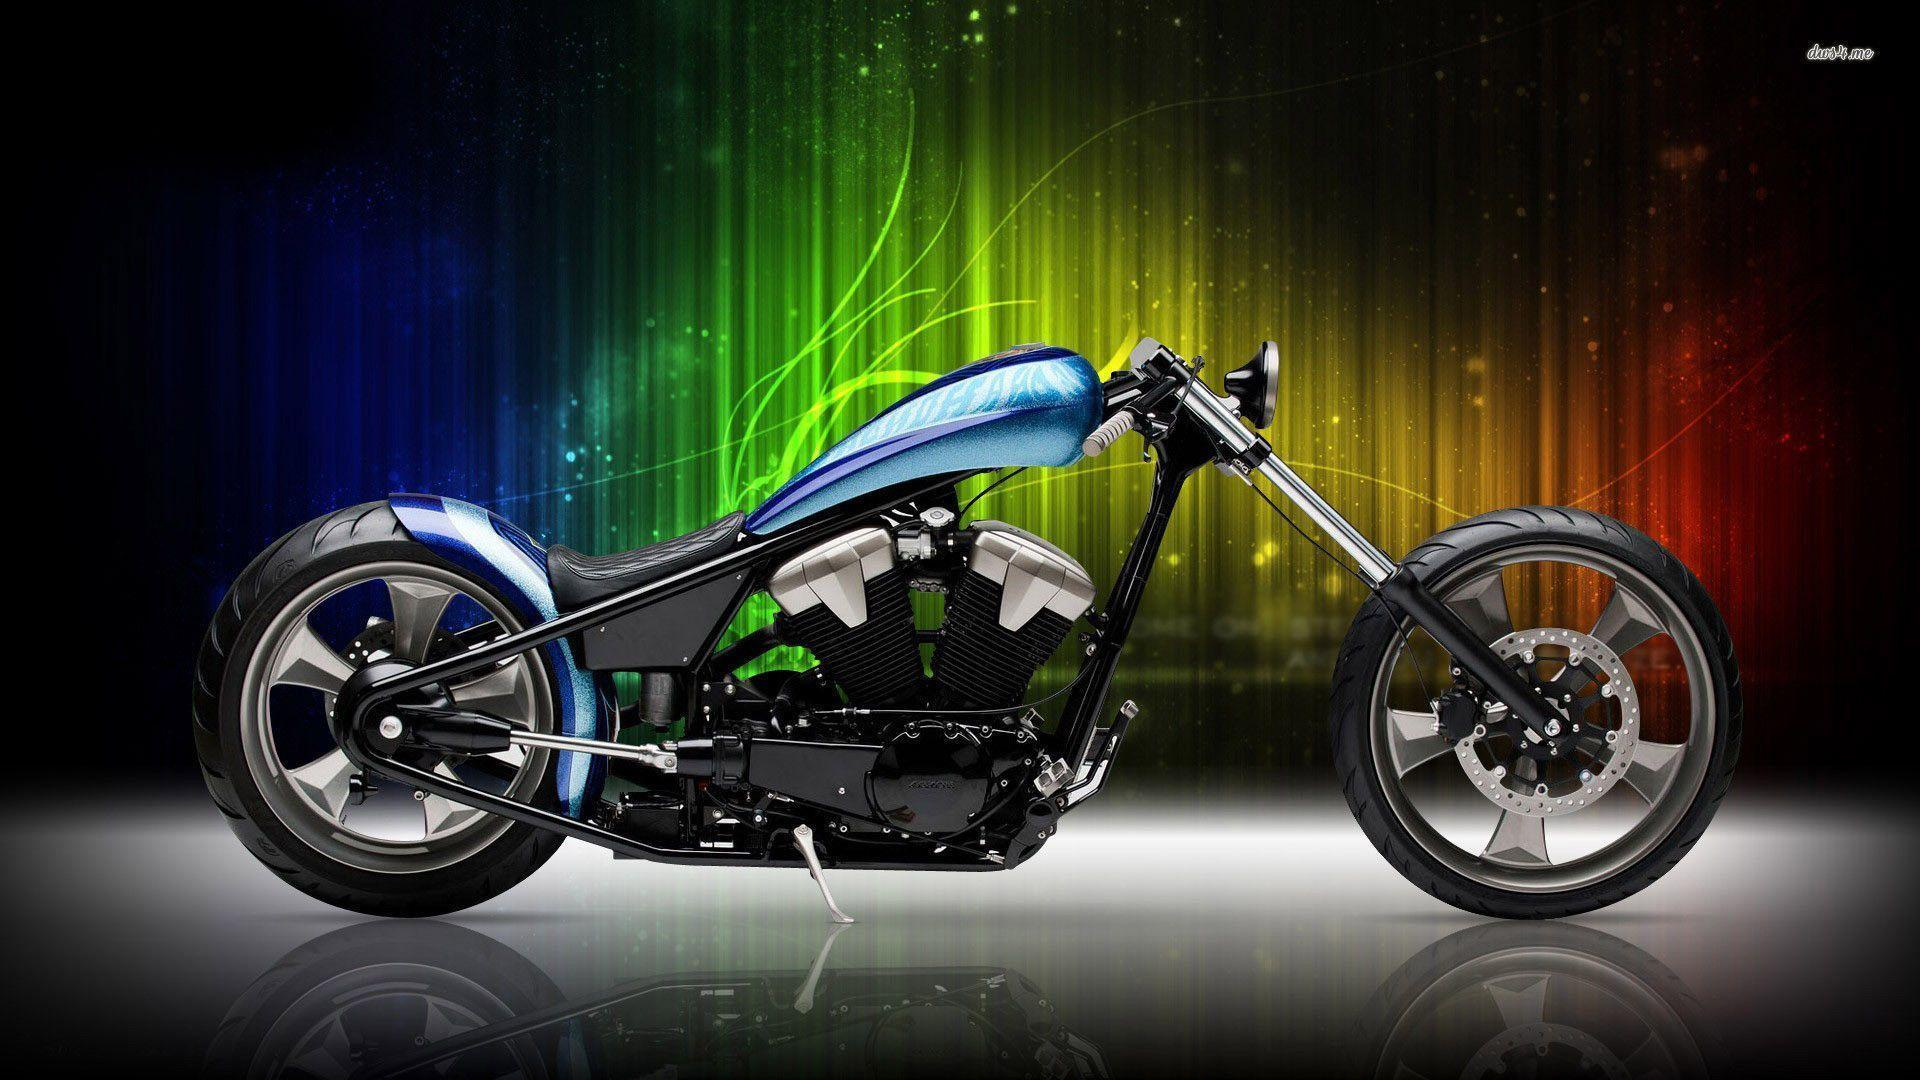 Custom Chopper Wallpaper  Motorcycle Wallpapers